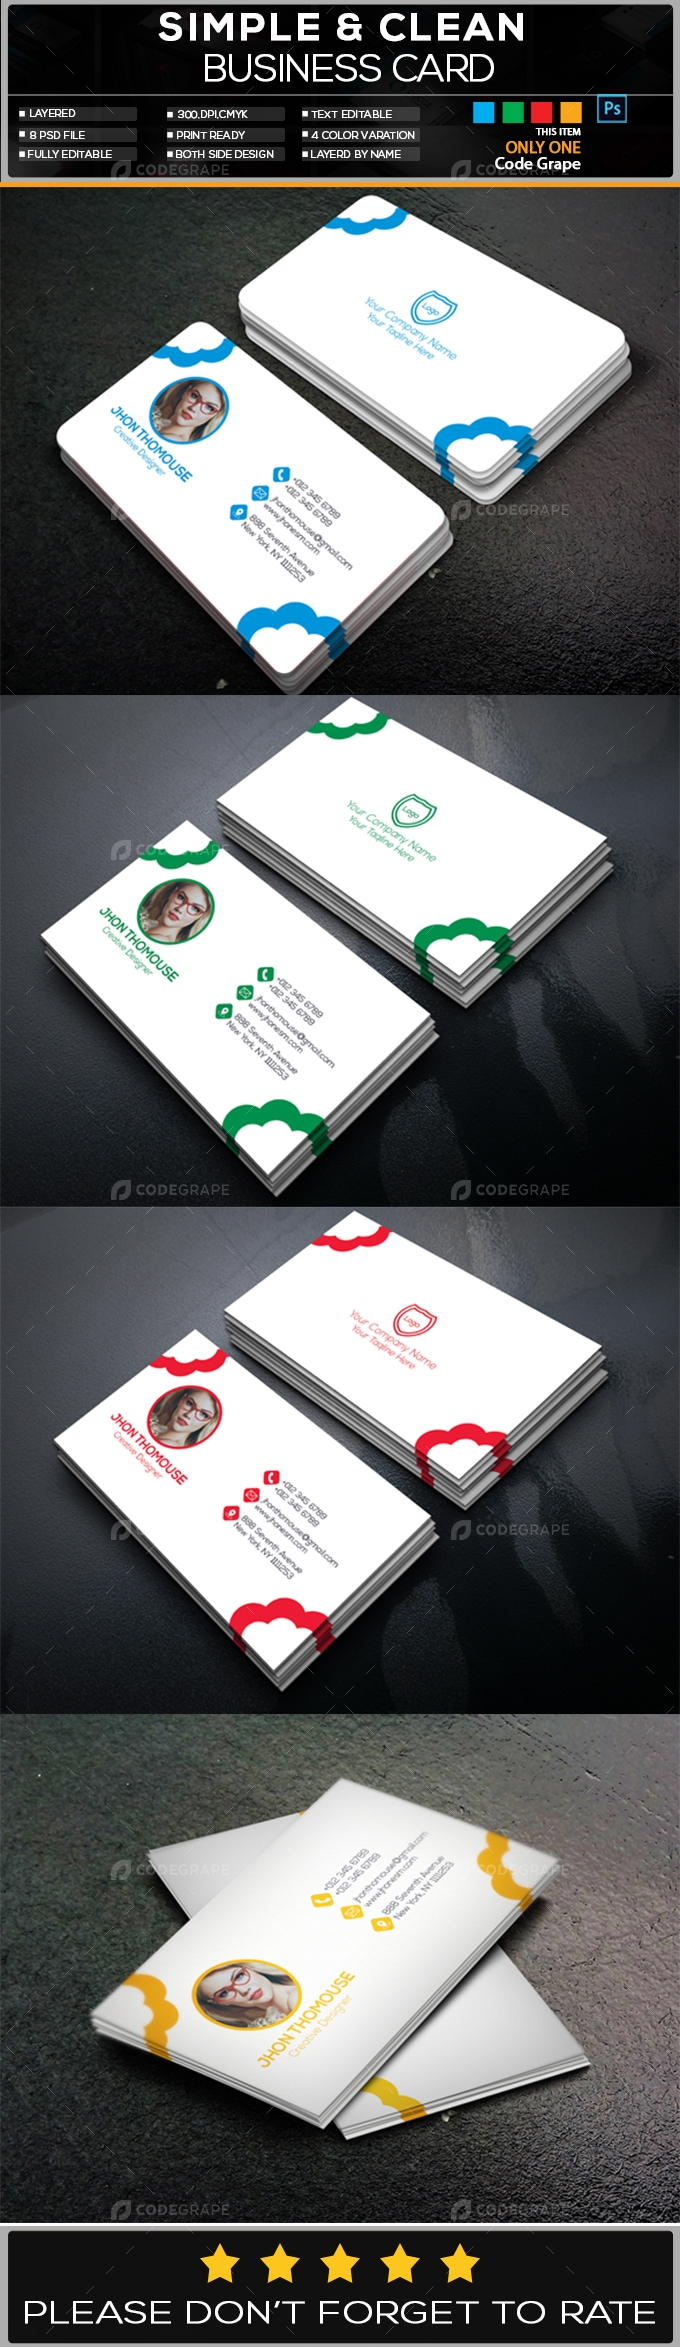 Photography Business Card Vol - 4